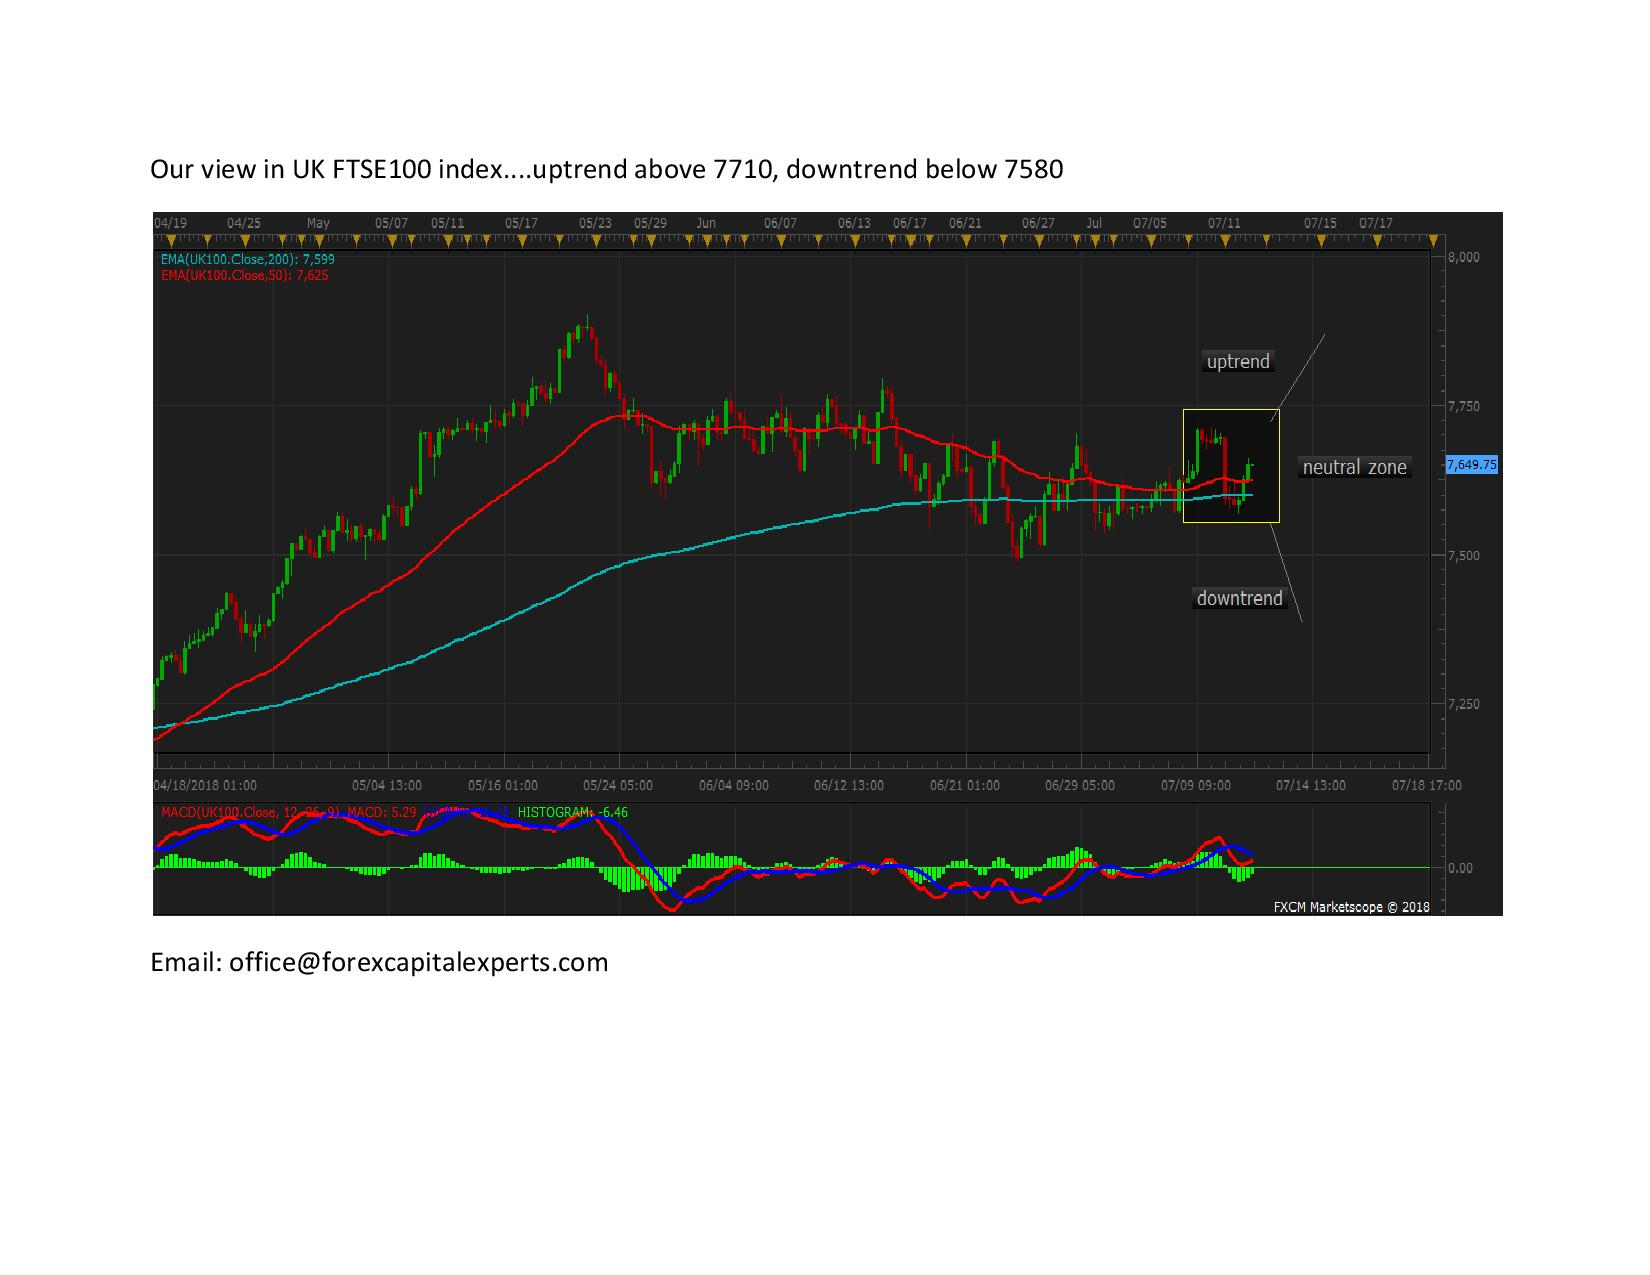 Our view in UK FTSE100 index page 001